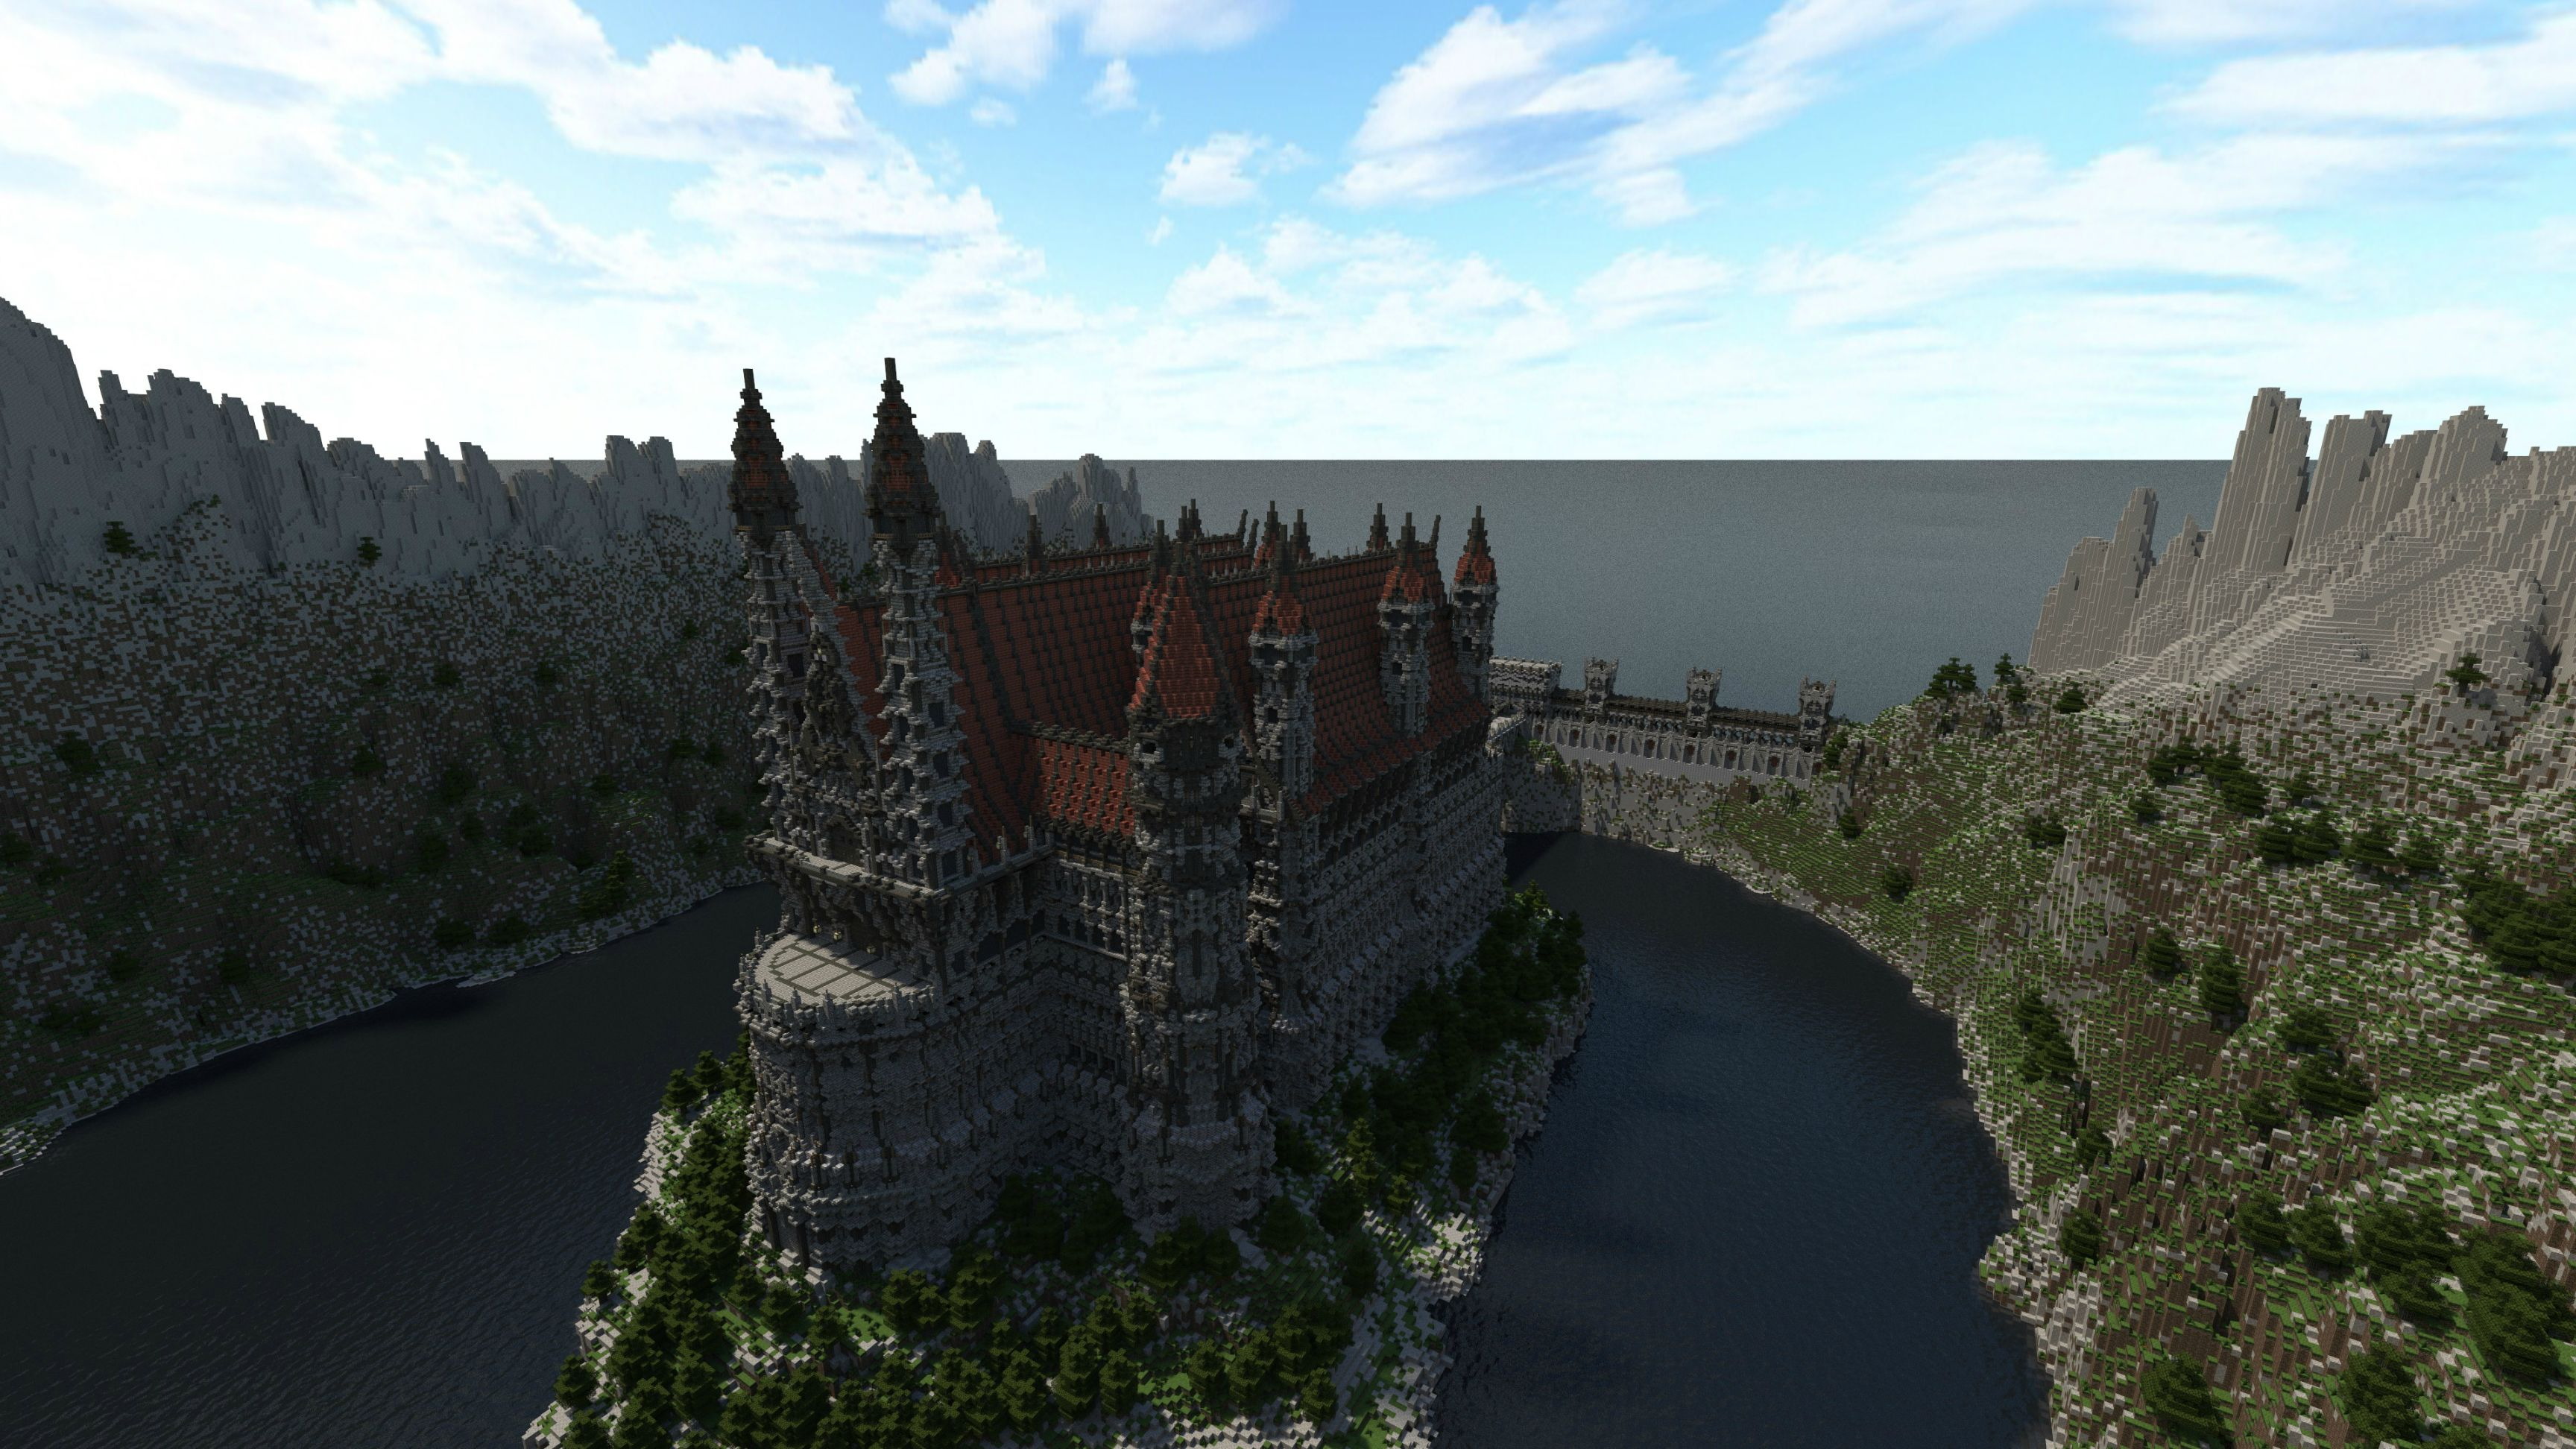 Over four years went into building this gorgeous Minecraft kingdom ...